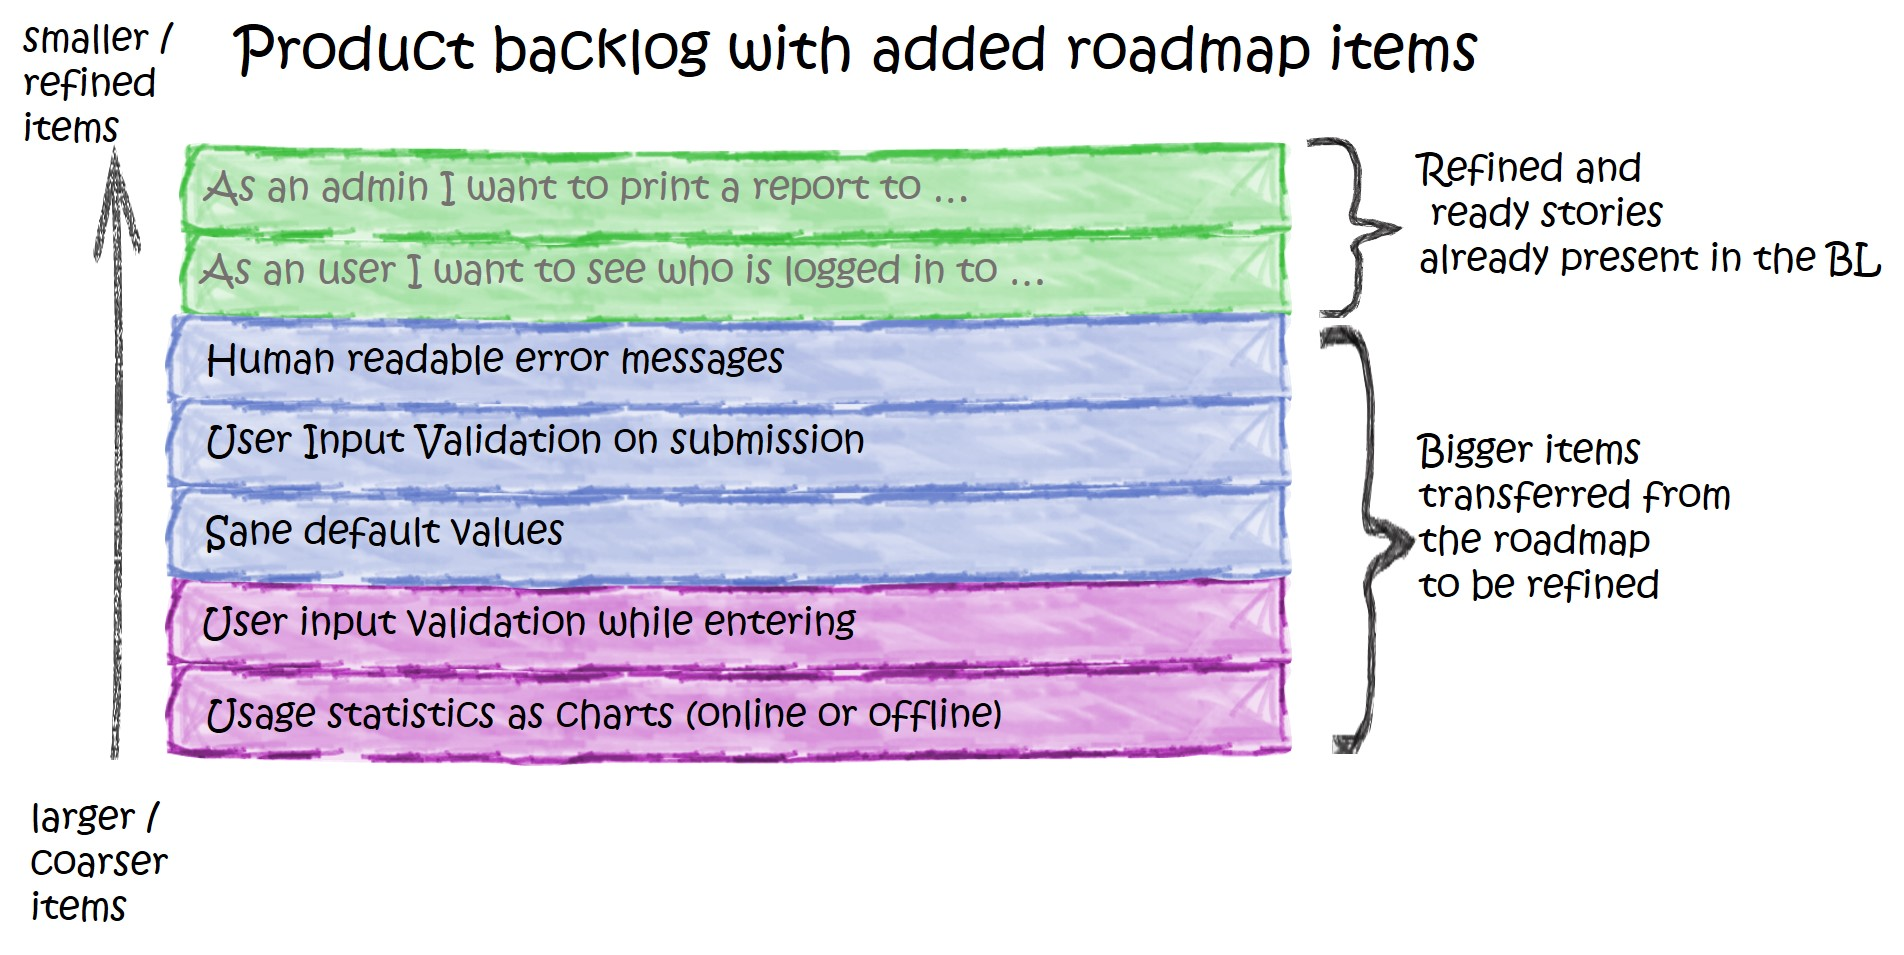 The product backlog containig the roadmap items